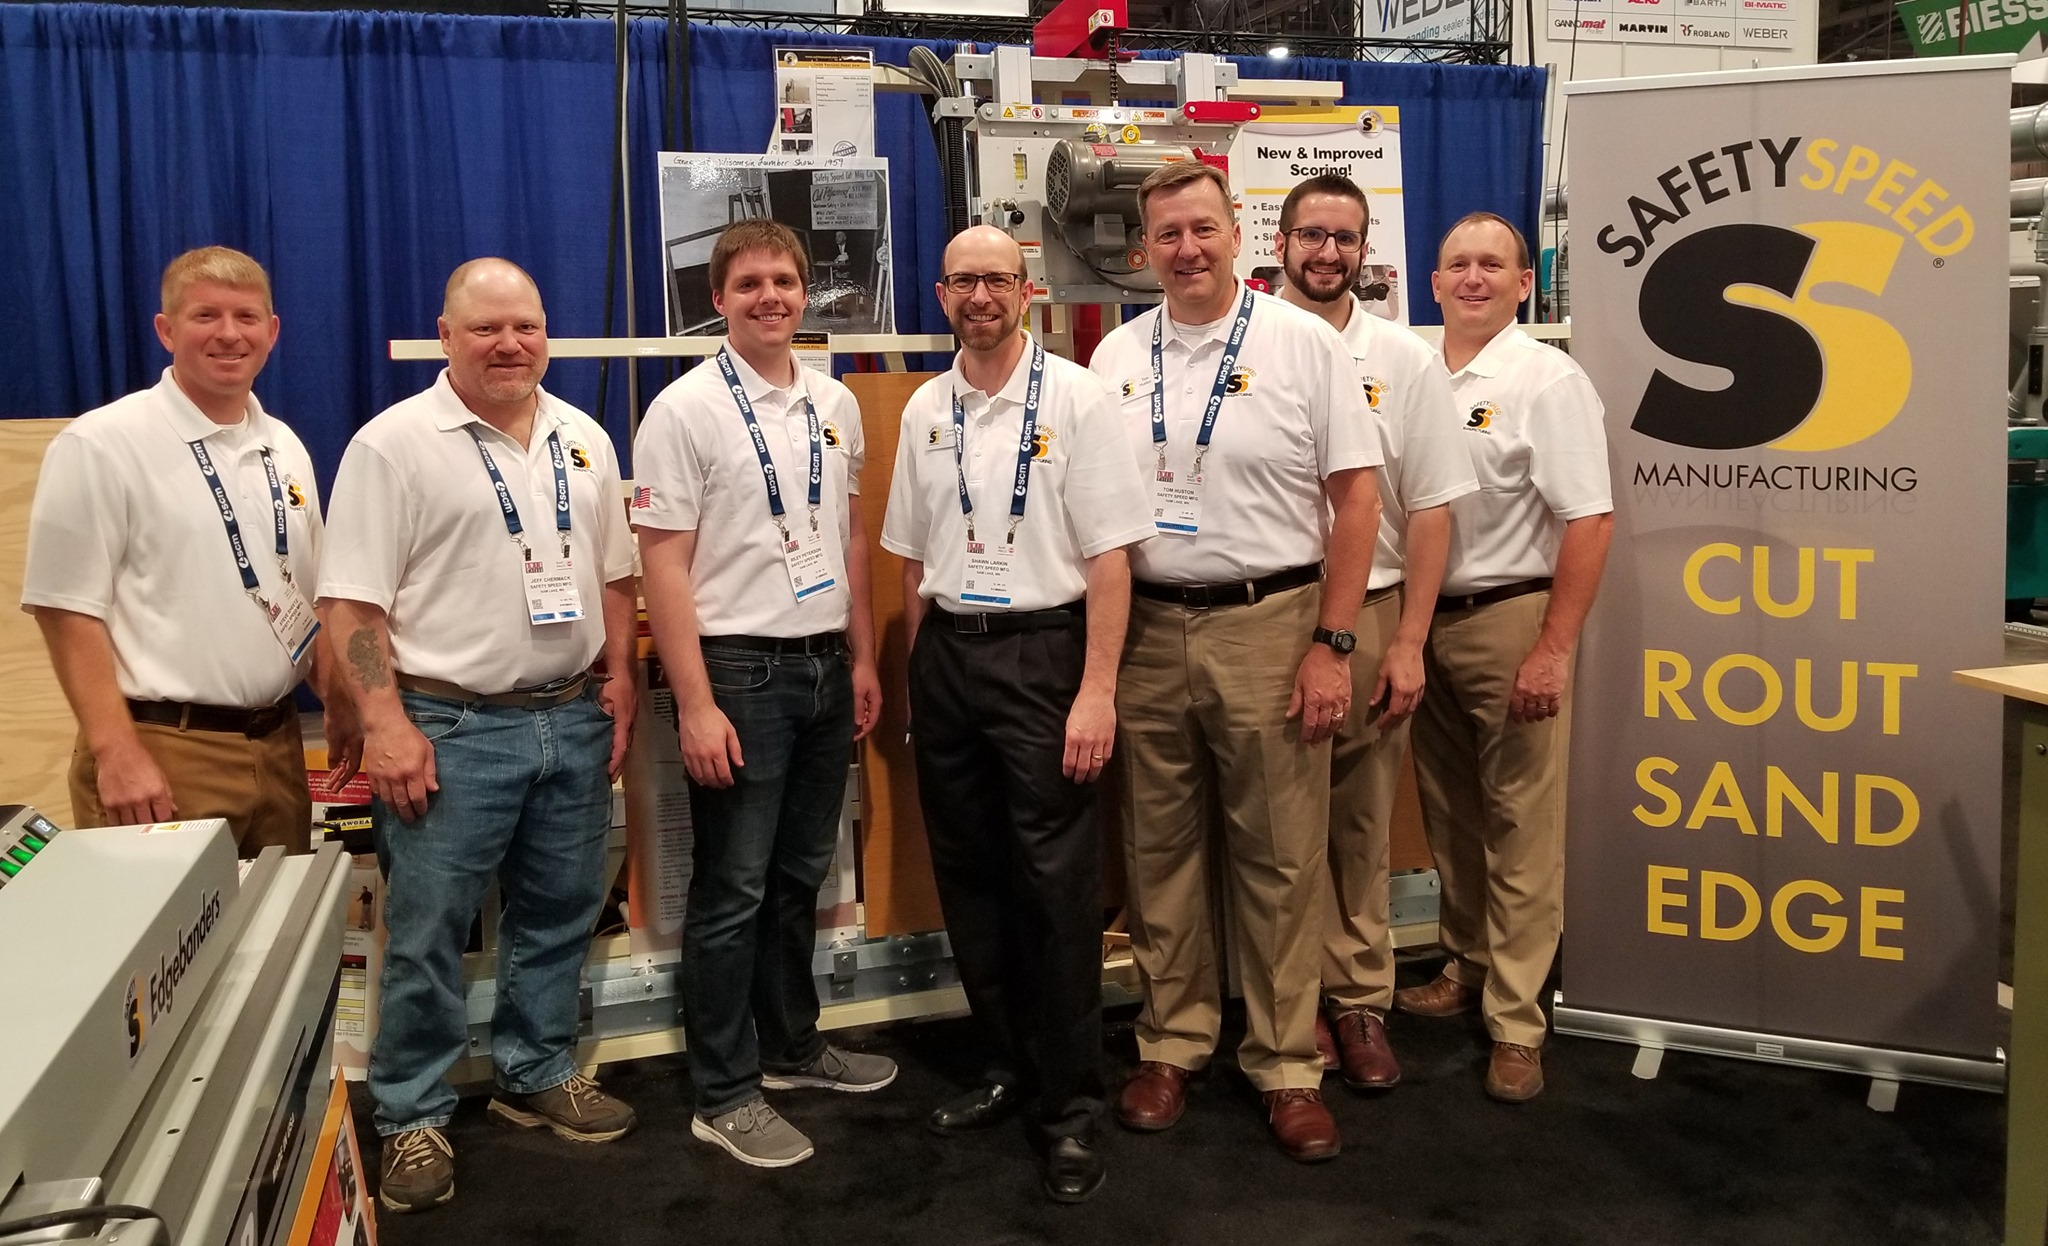 staff of America's leading manufacturer of vertical panel saws